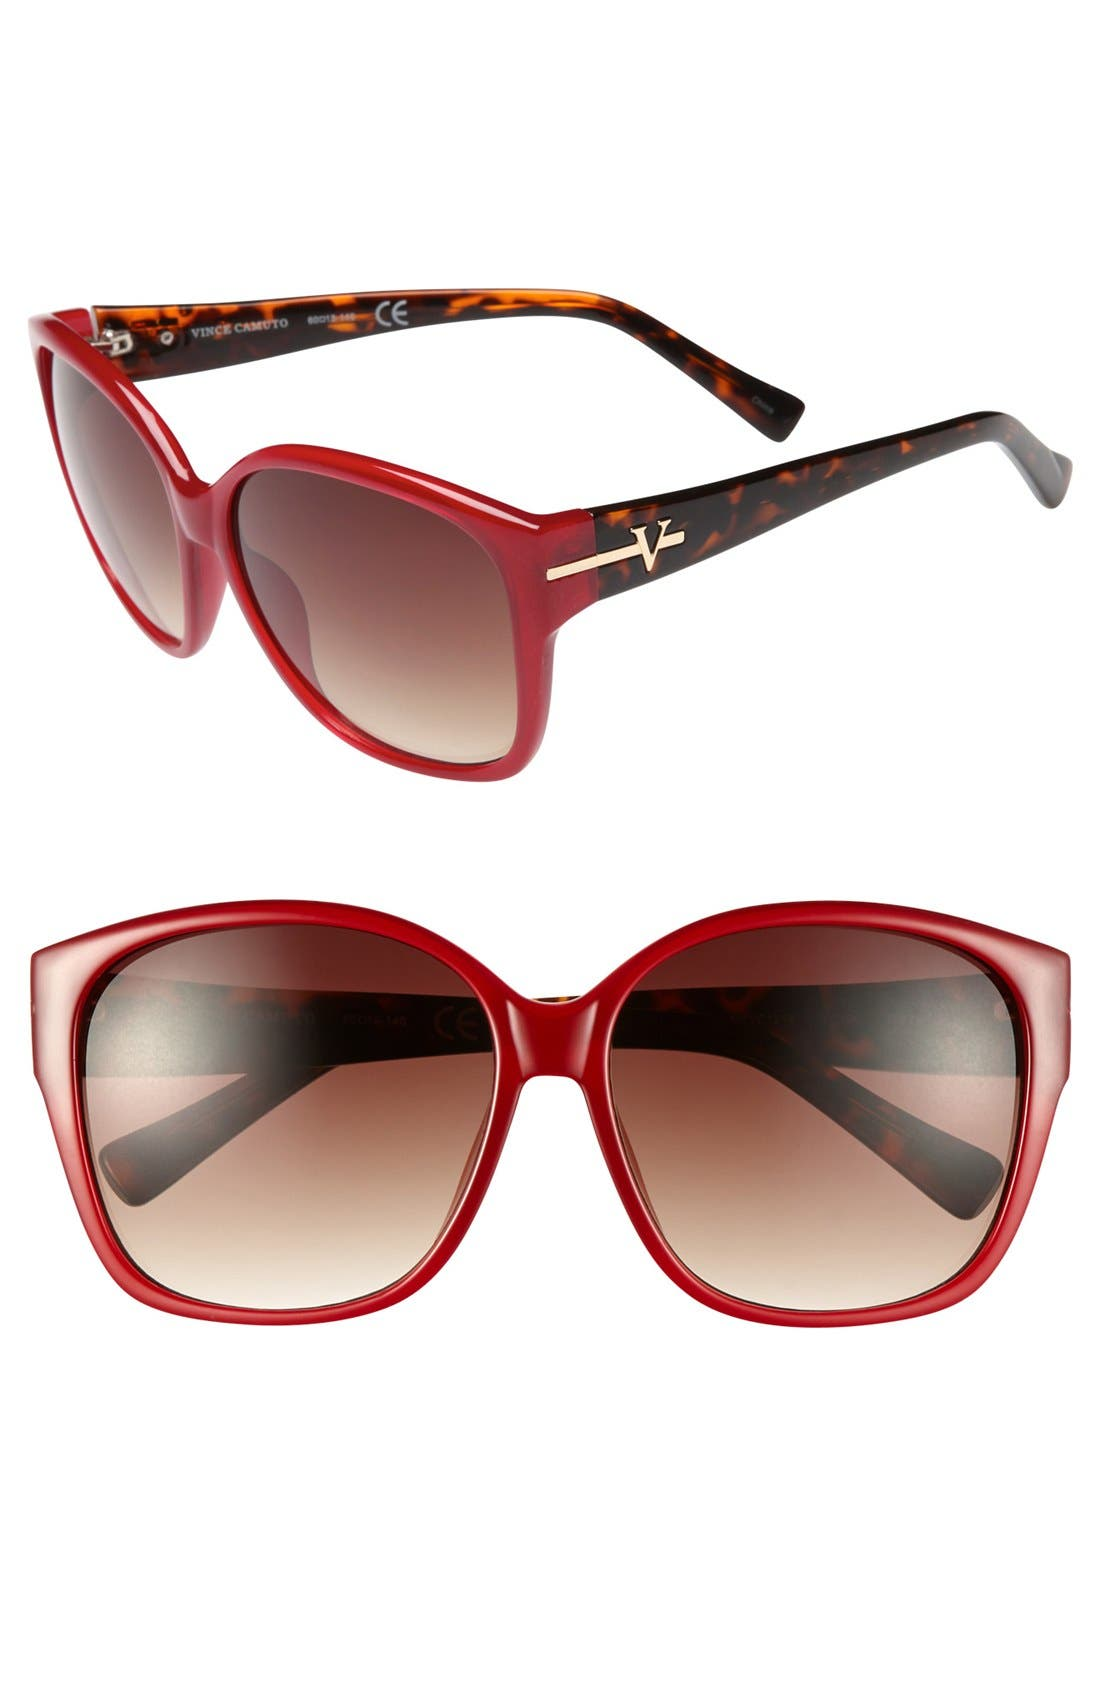 Alternate Image 1 Selected - Vince Camuto 60mm Retro Sunglasses